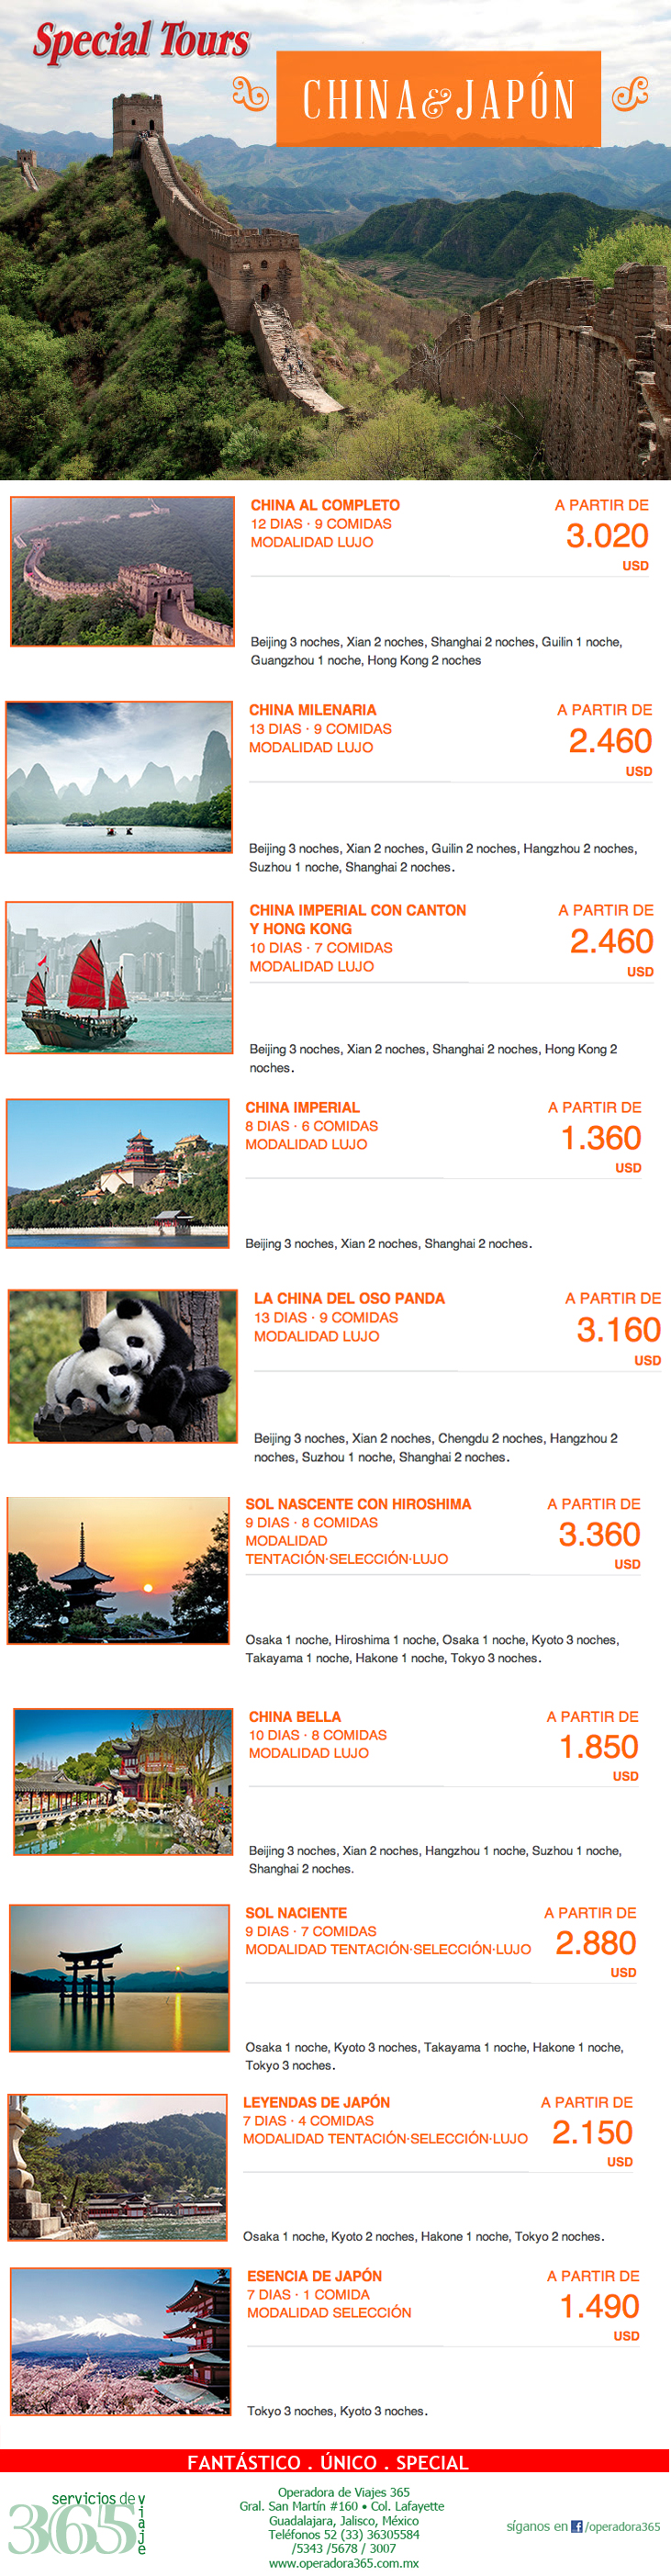 Special-Tours--China-y-Japon